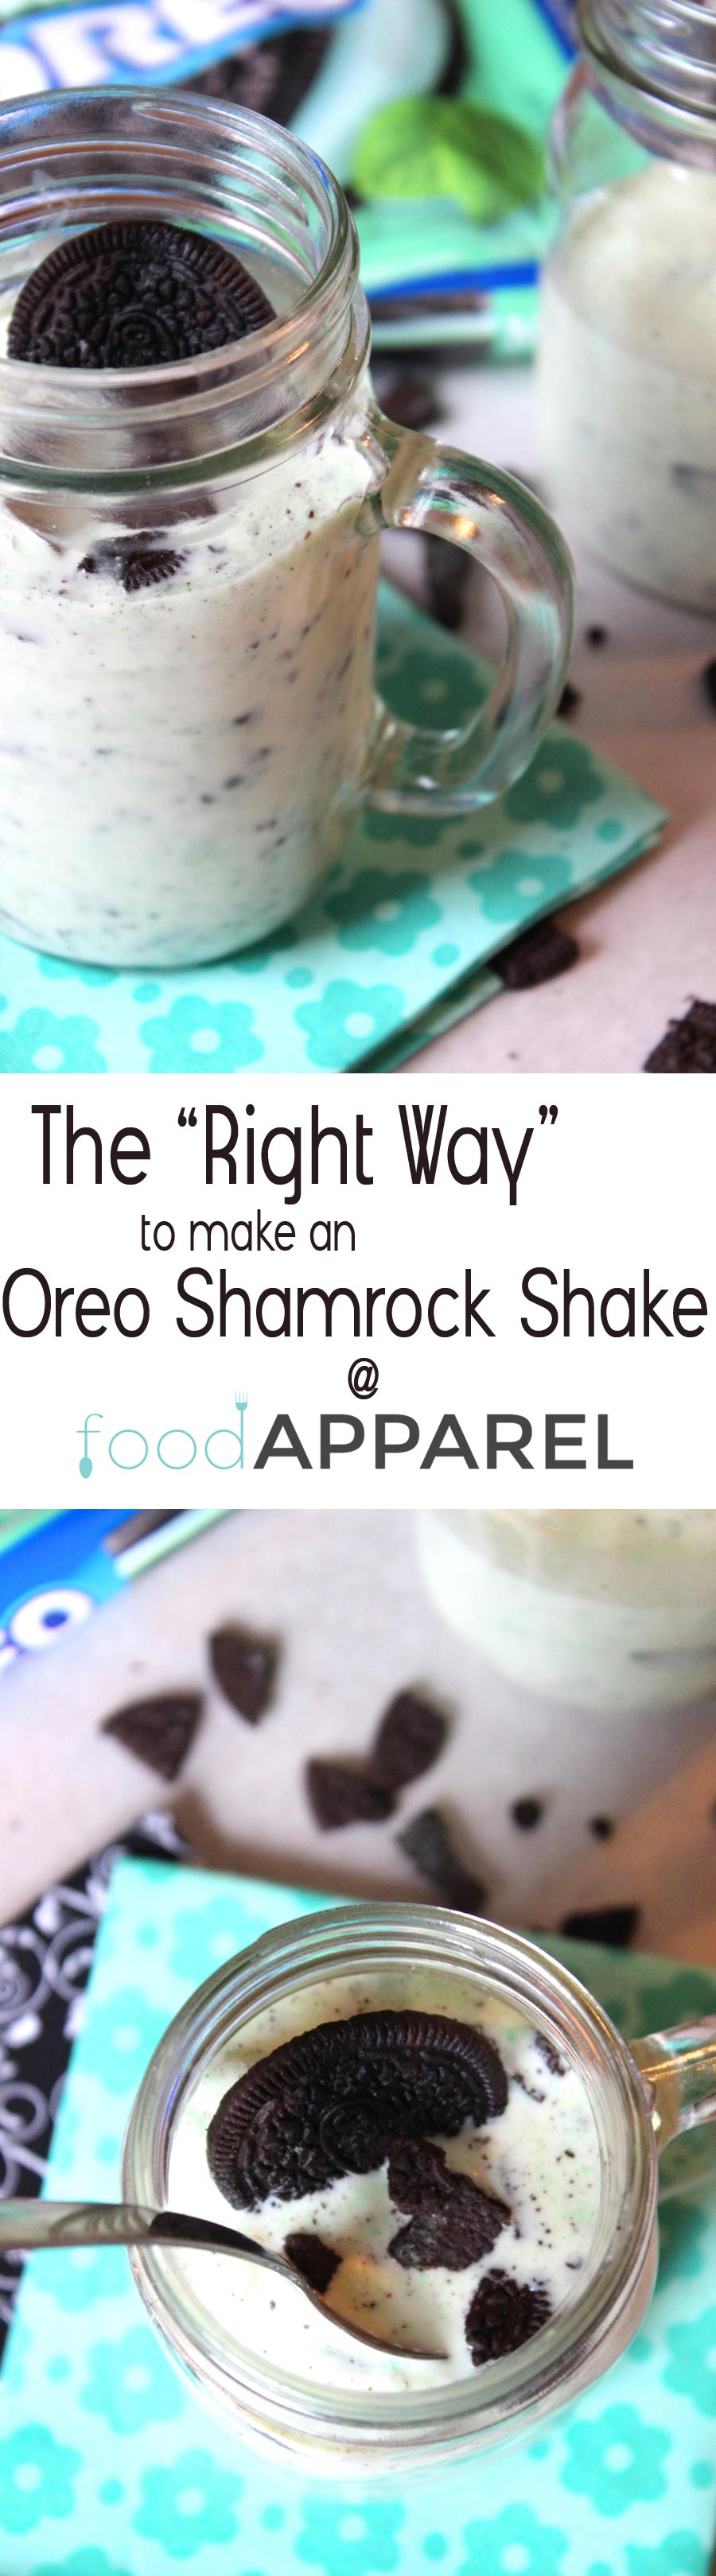 "The ""Right Way"" to make an Oreo Shamrock Shake! A couple of quick tips to make your shake rock your world!"